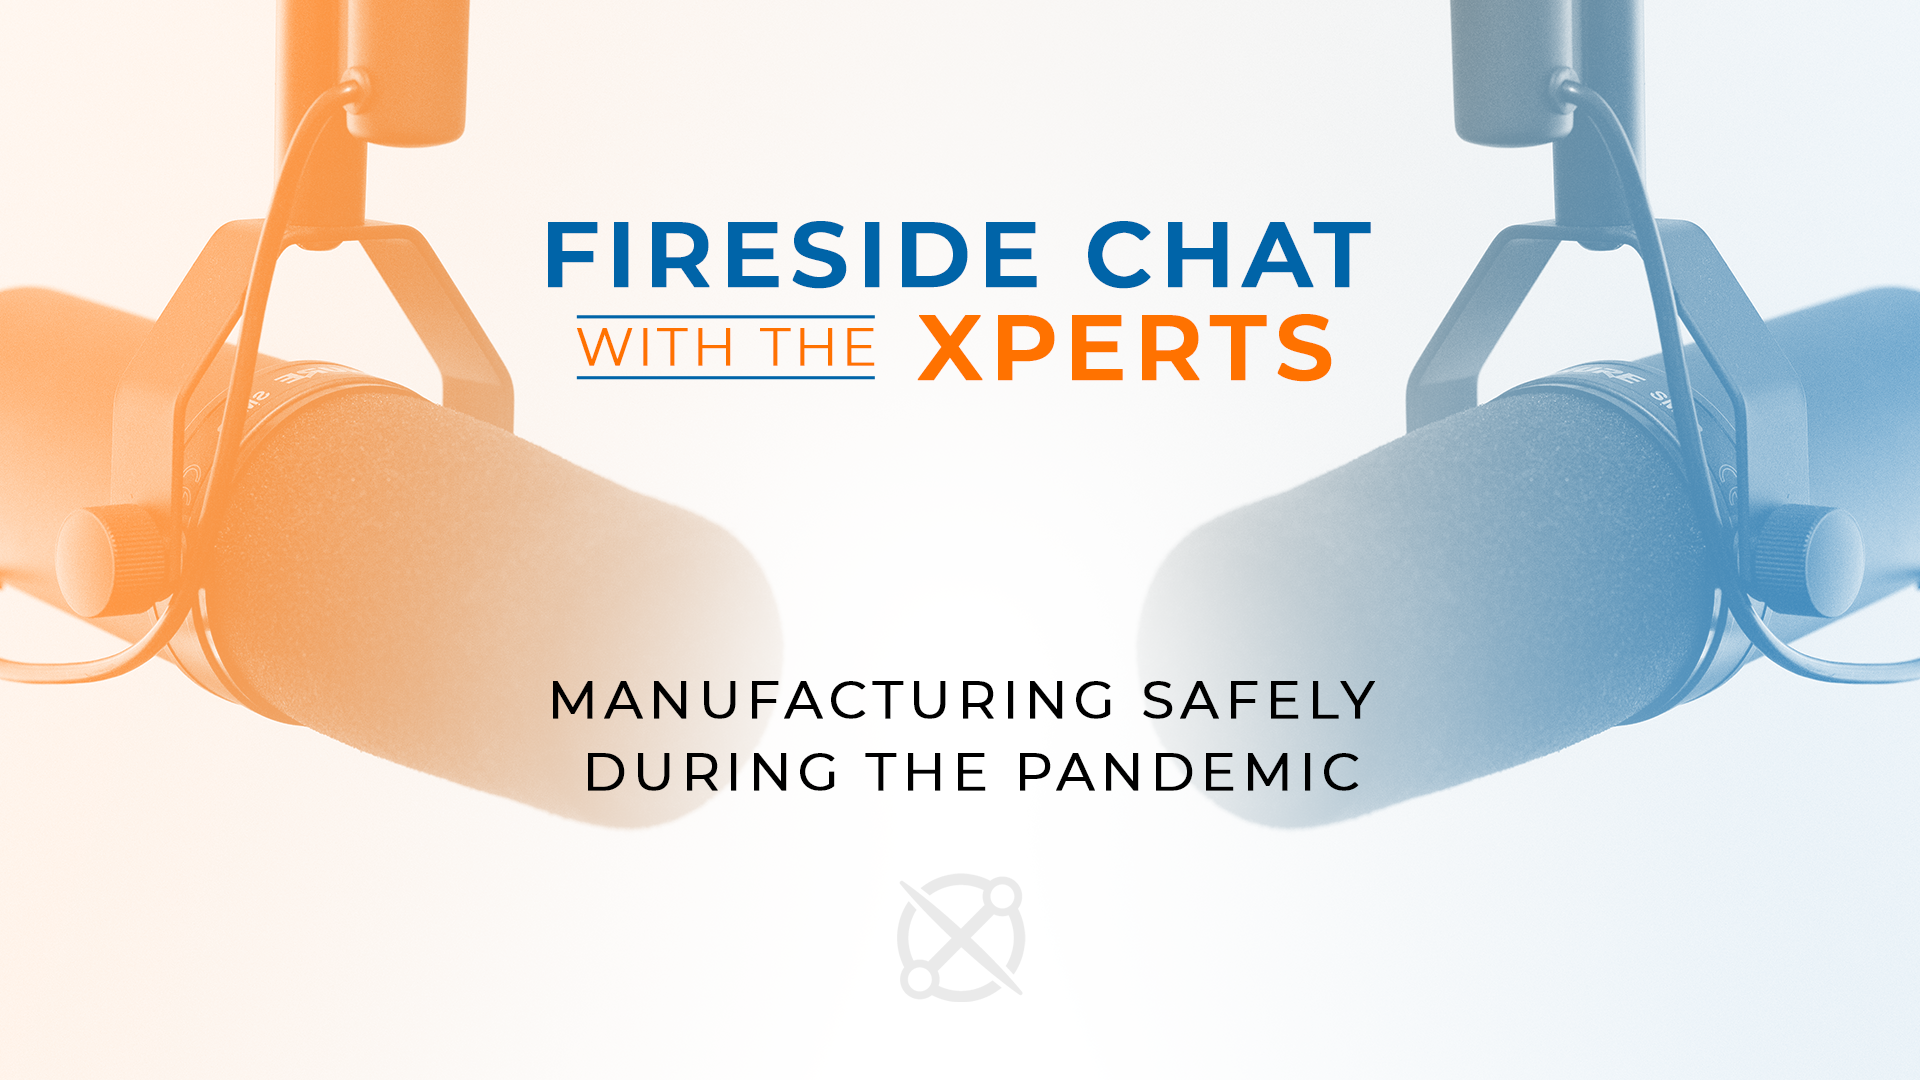 Fireside Chat with the Xperts: Manufacturing Safely during the Pandemic